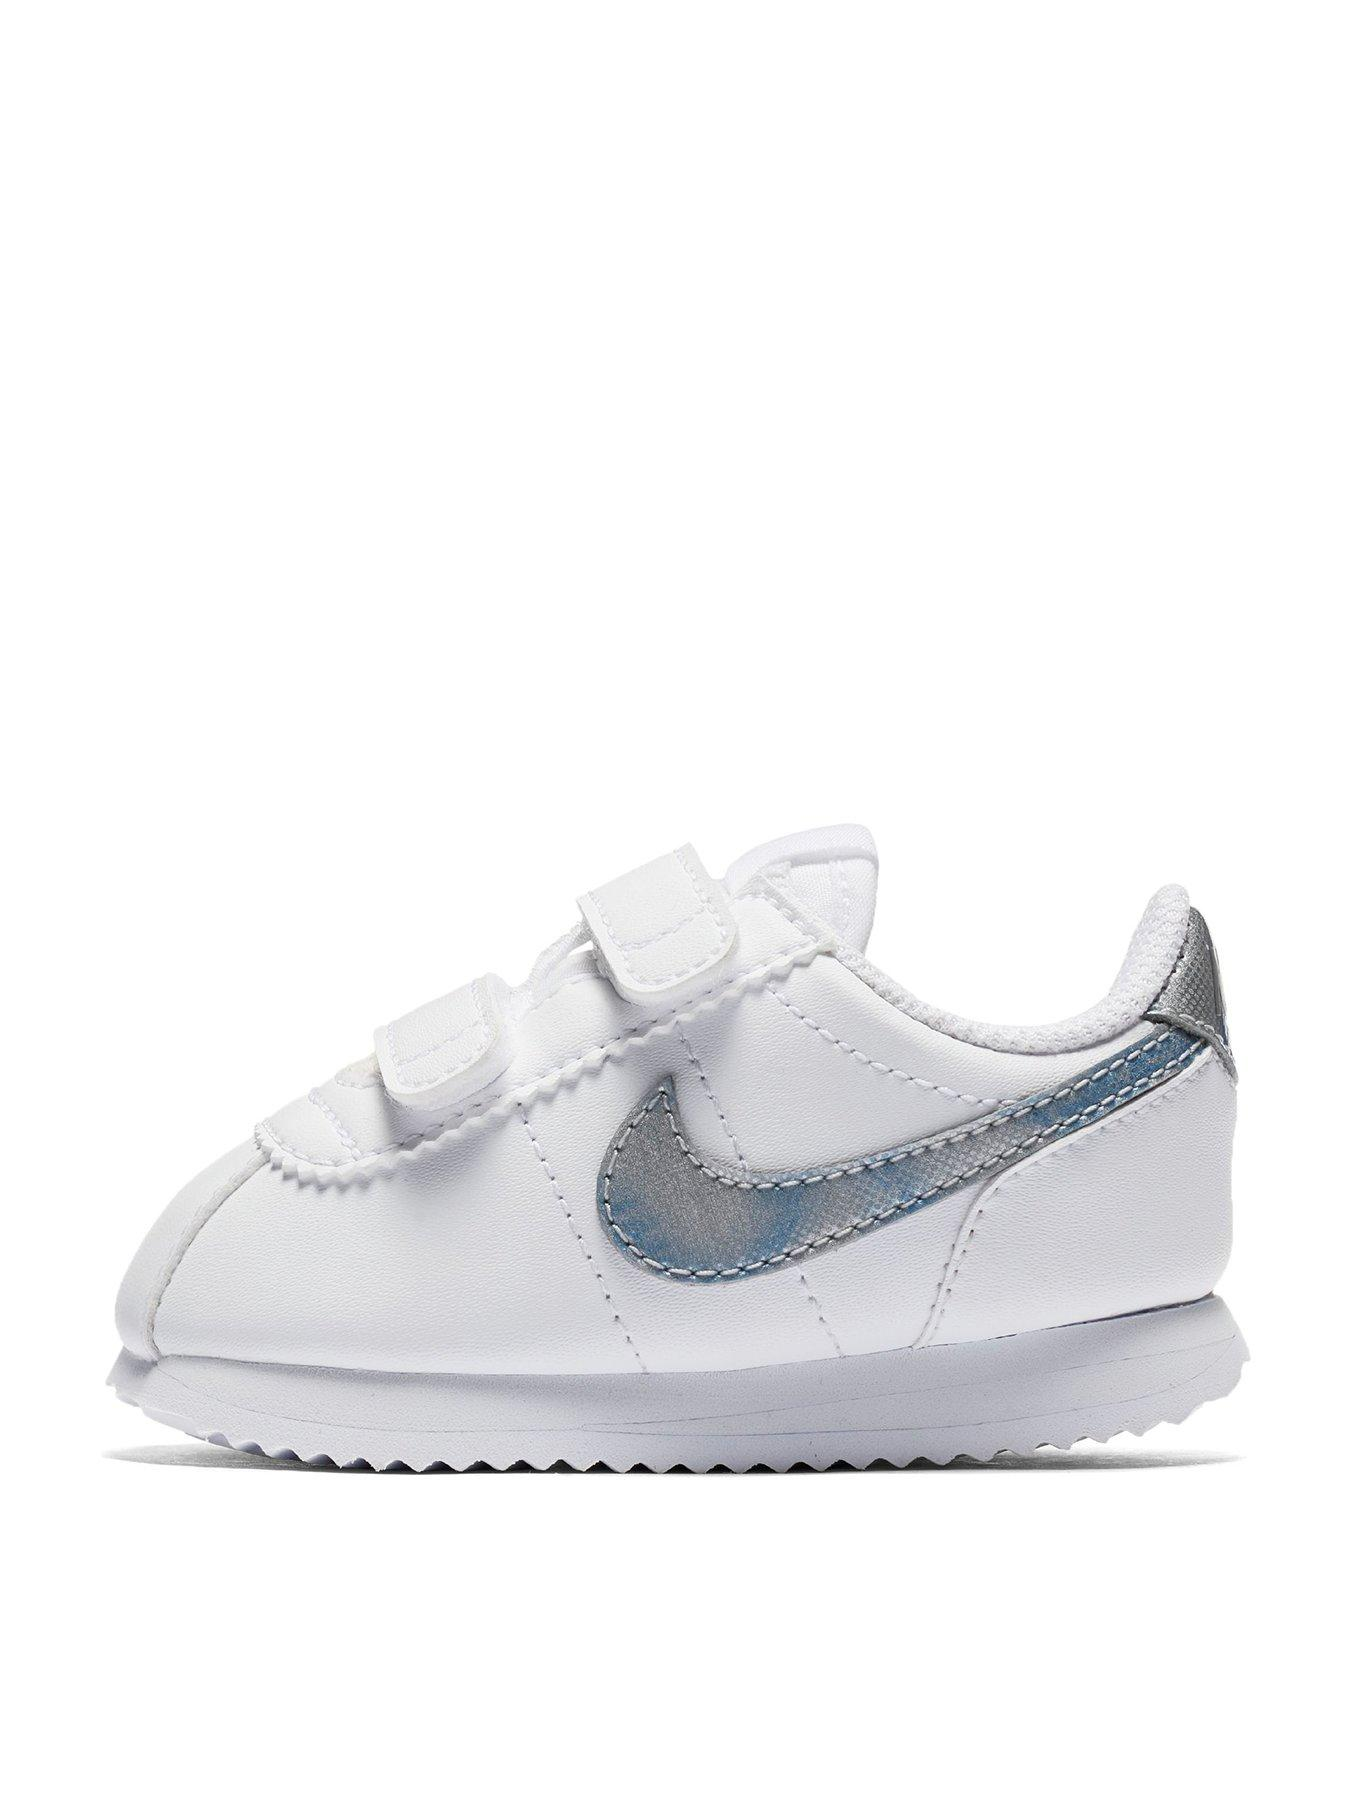 ce7d7755f72b8a ... promo code for nike cortez sl infant trainer littlewoodsireland.ie  436f5 8dc99